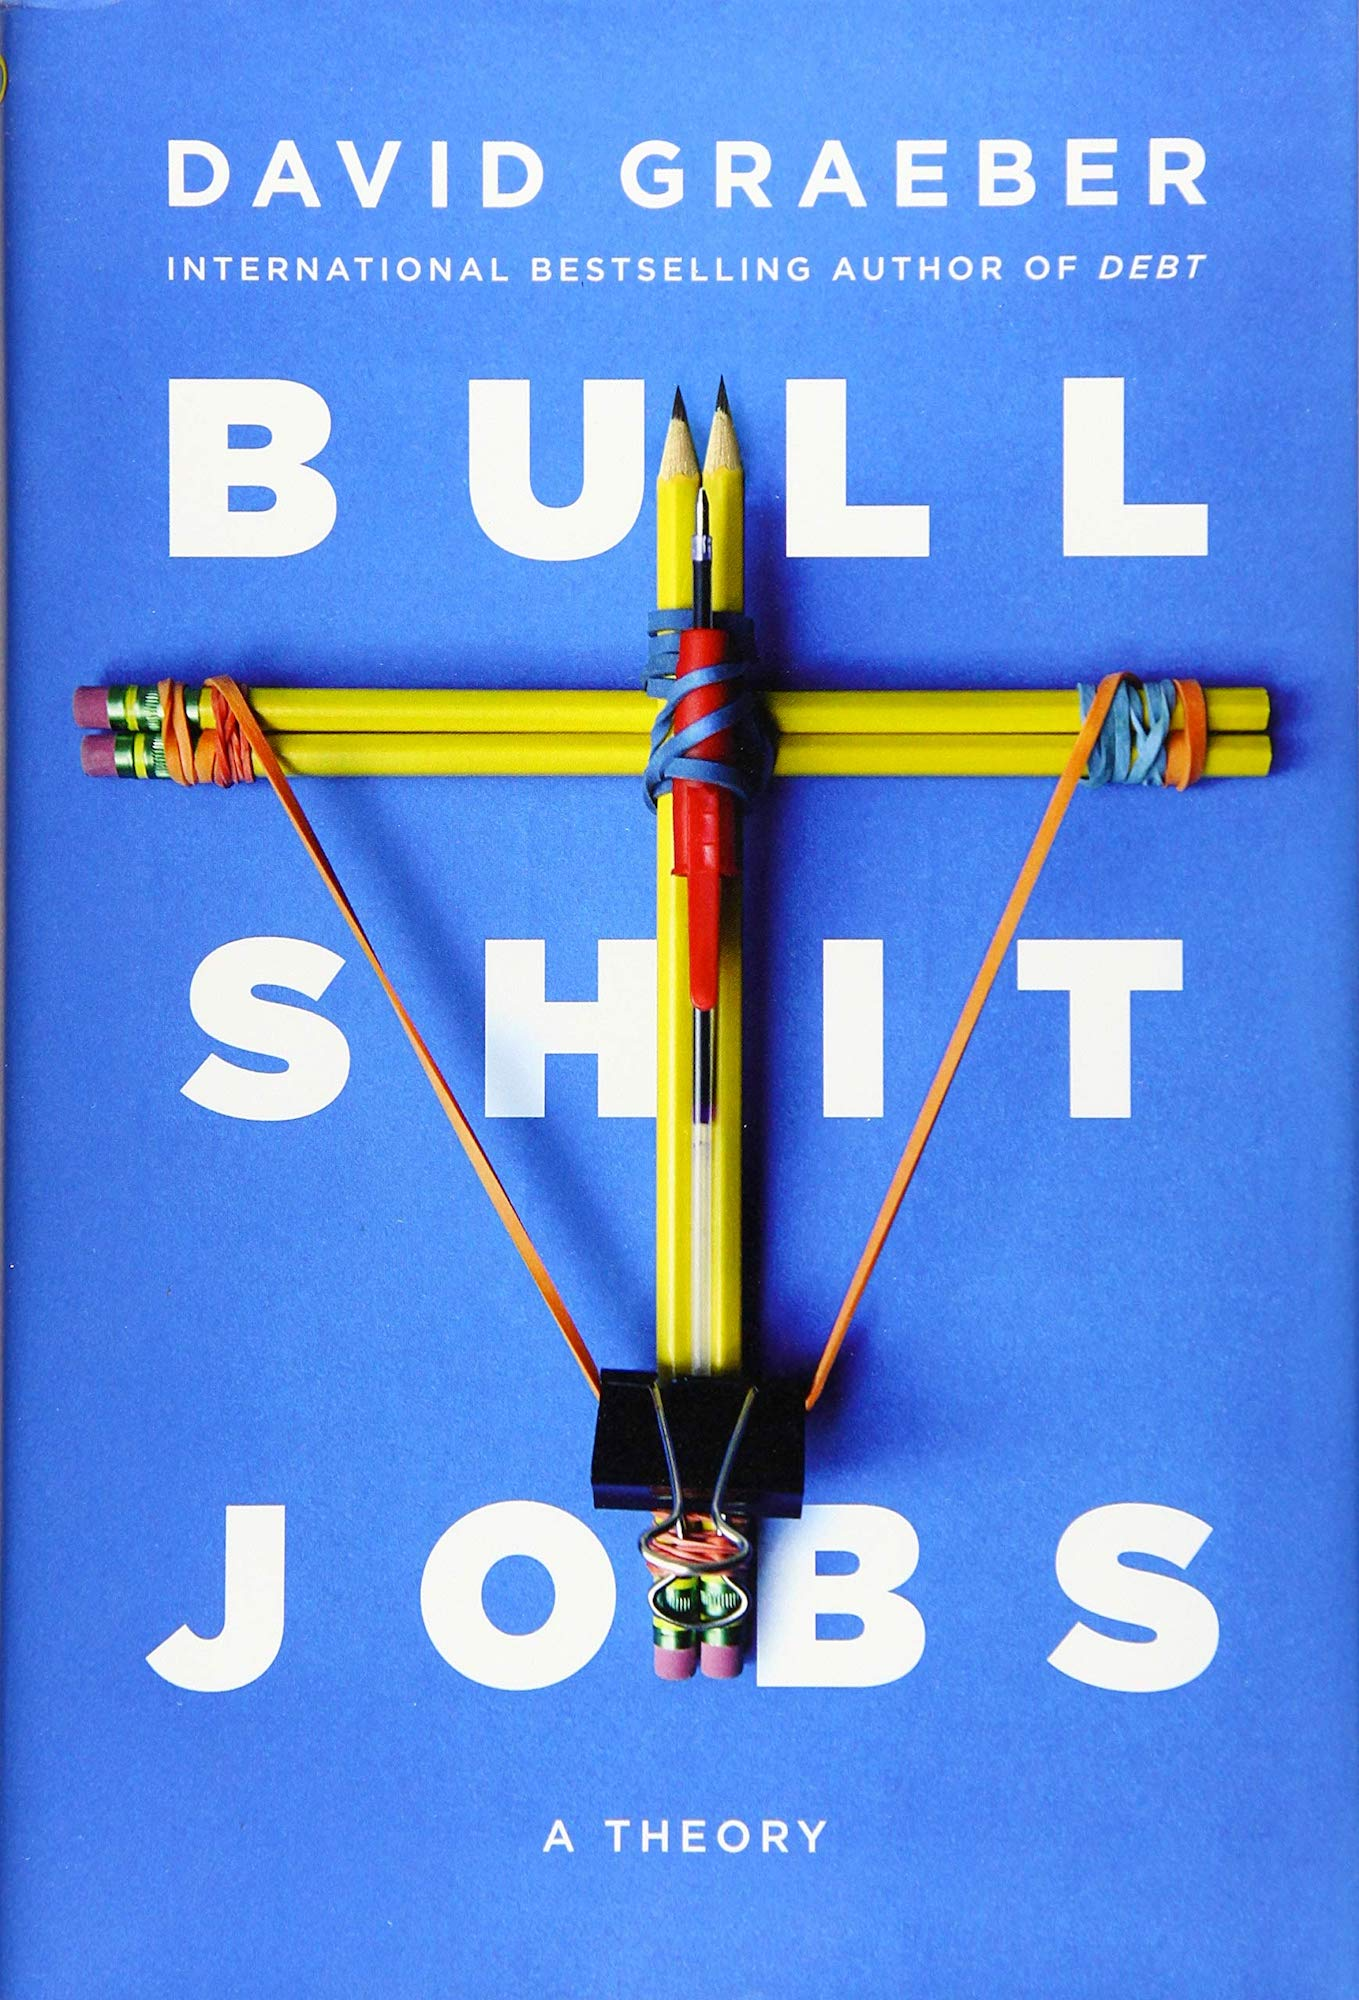 David Graeber's book explores the explosion of seemingly meaningless, unfulfilling (simply bullshit) jobs